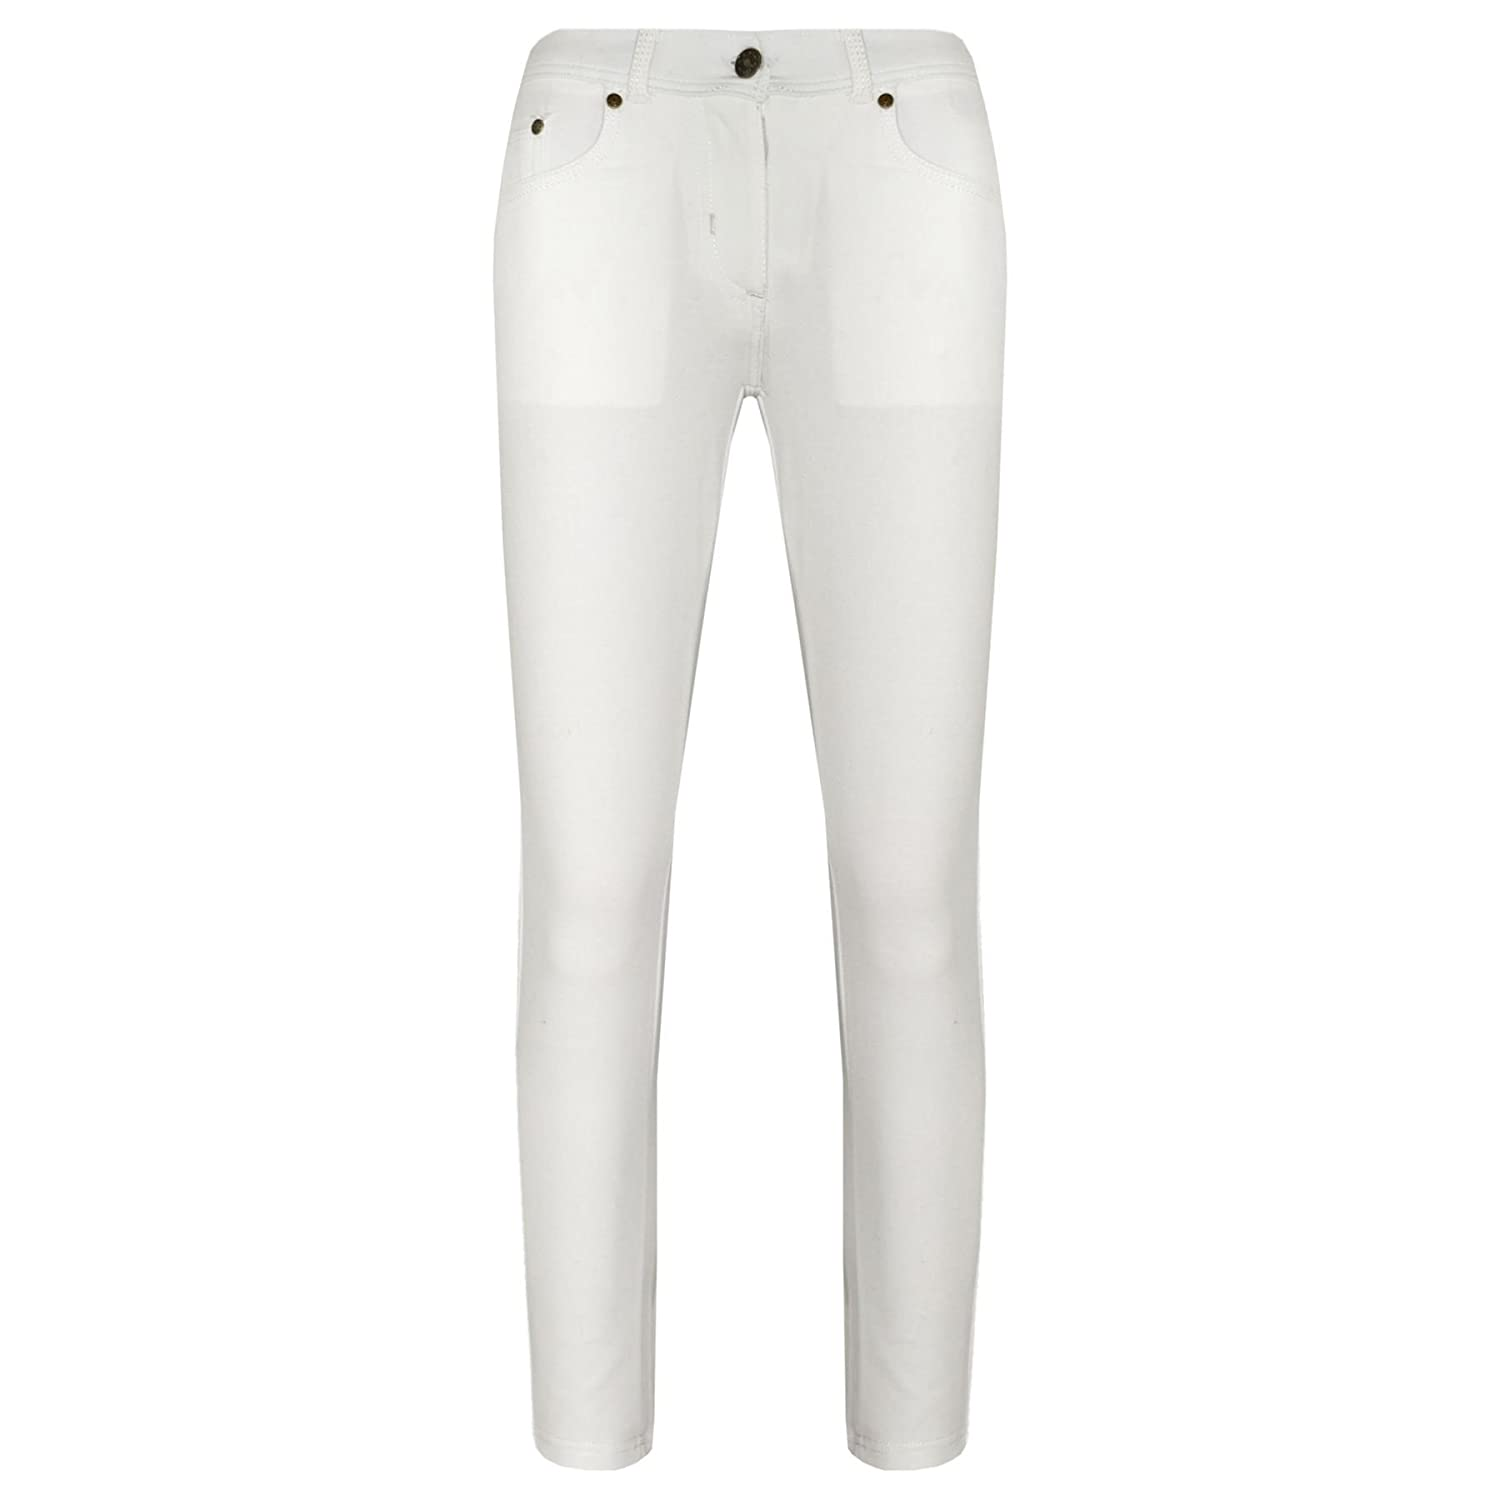 A2Z 4 Kids Girls Skinny Jeans Kids Stretchy Jeggings Denim Fit Pants - Girls Jeggings 061 White 11-12